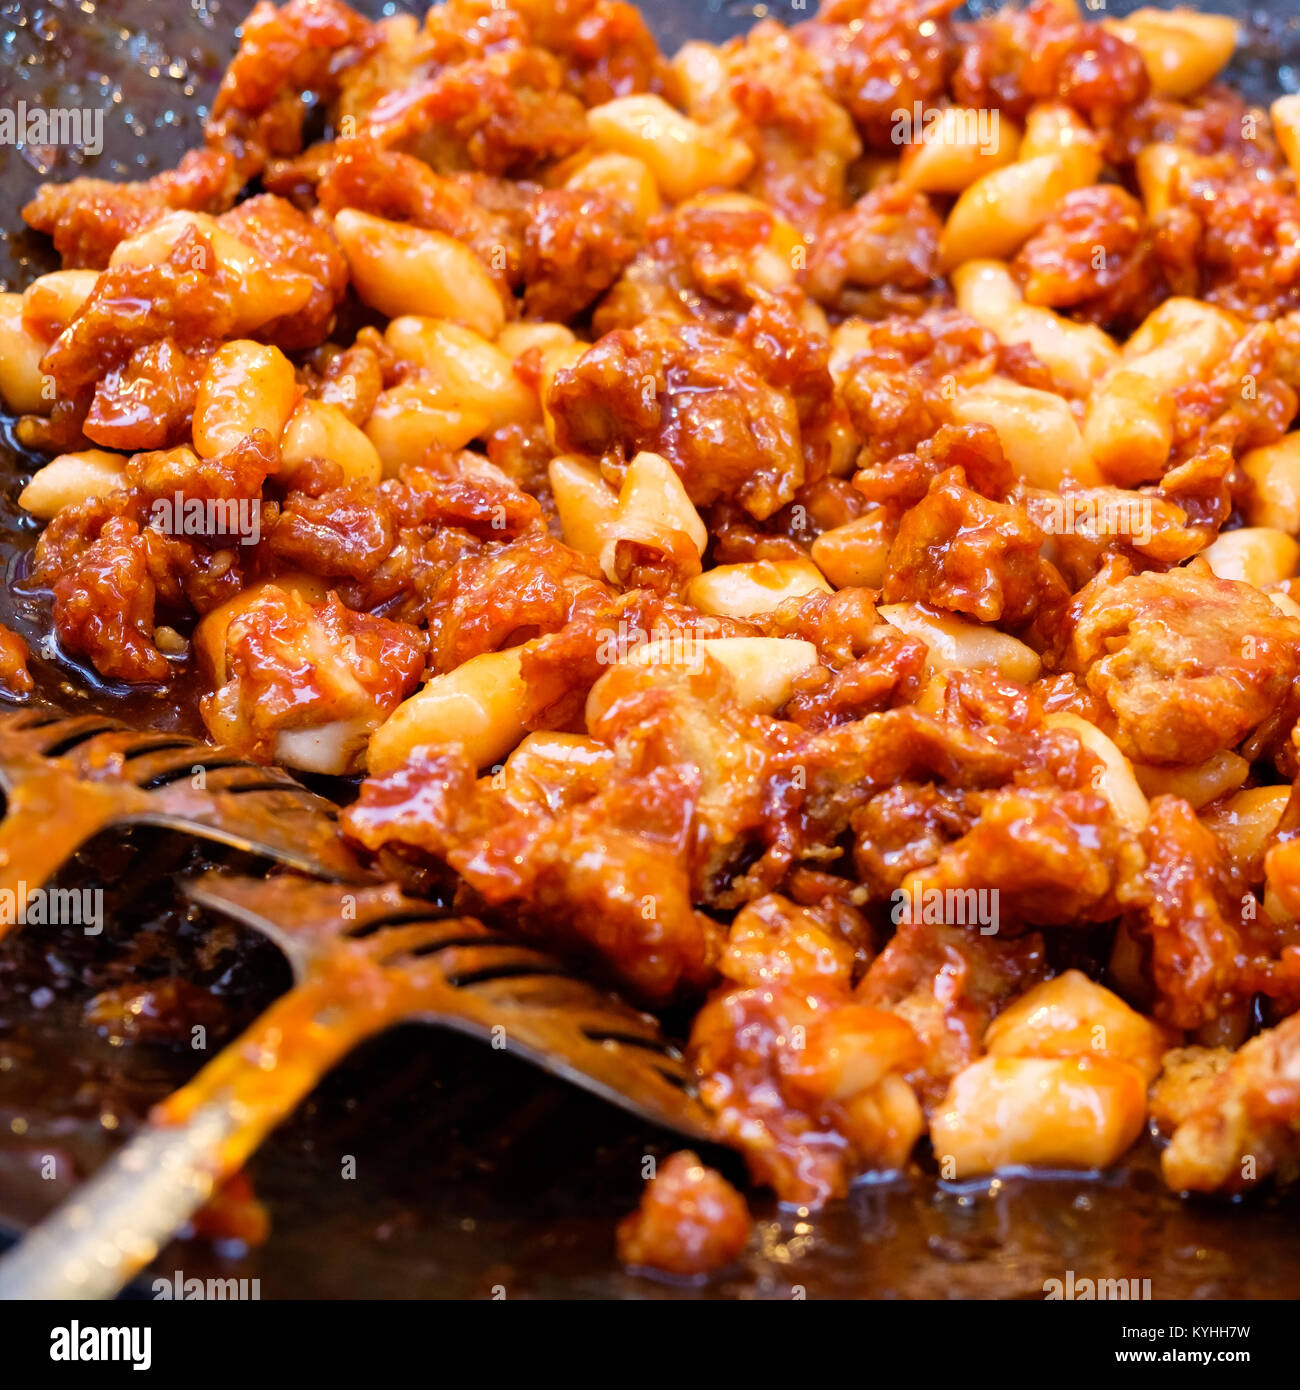 Stir Fried Rice Cake Tteok Bokki Korean Street Food Stock Photo Alamy